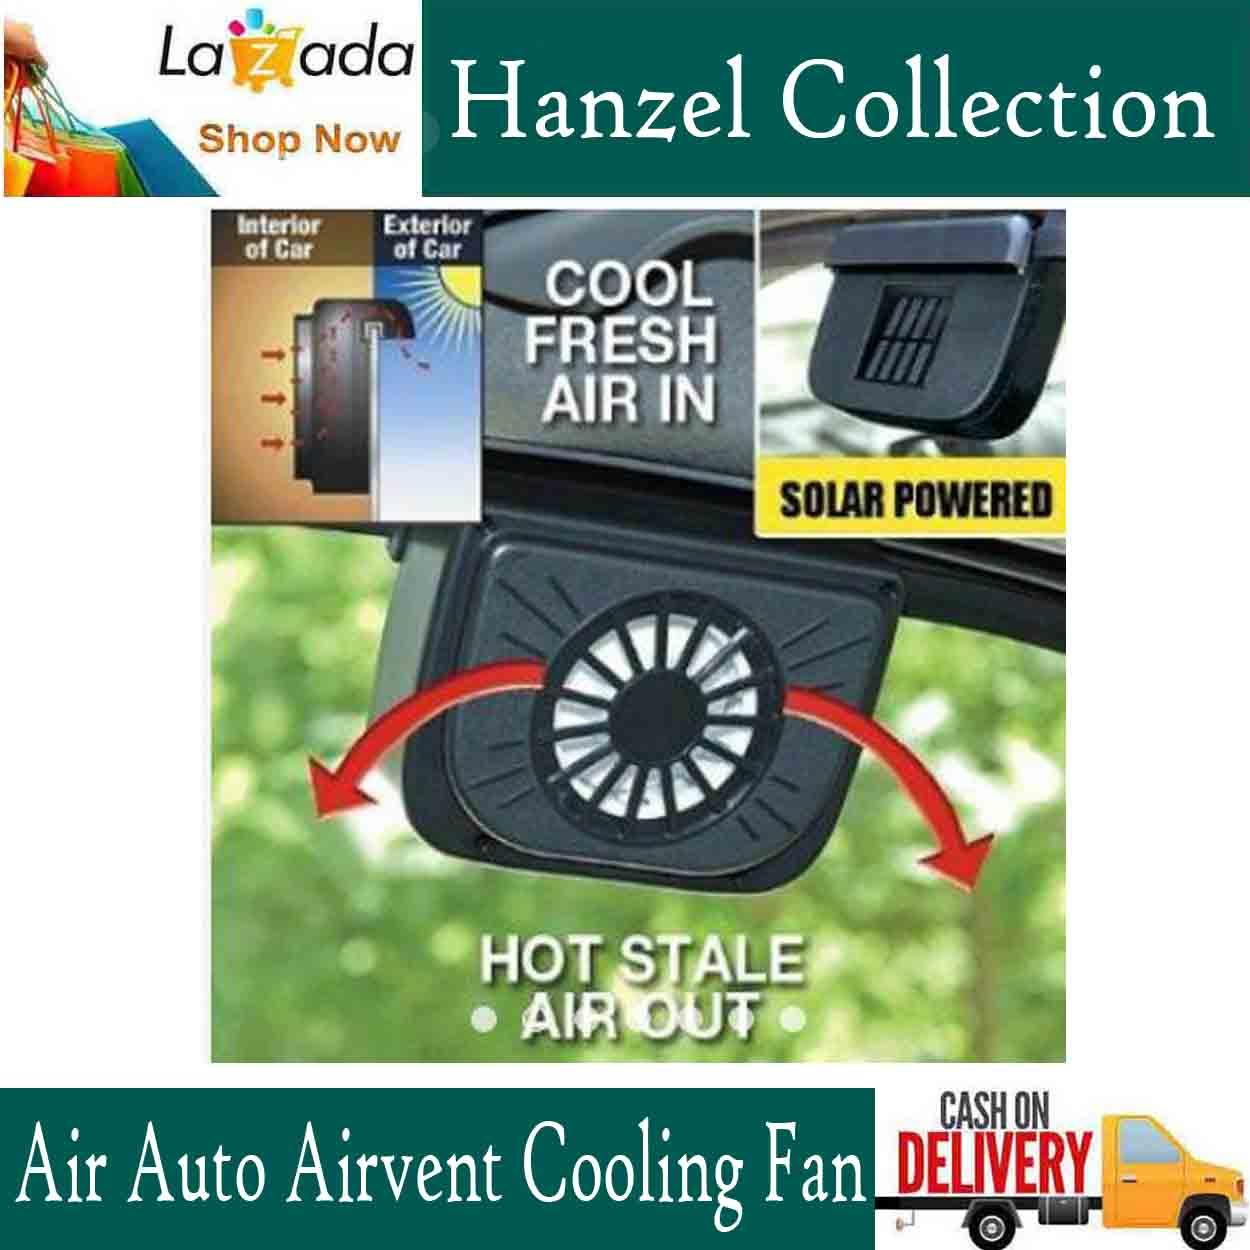 Car Fan For Sale Auto Cooling Online Brands Prices Reviews 1992 Mazda 323 System Wiring Diagram New Window Air Vent Solar Power Energy Cool Cooler Universal